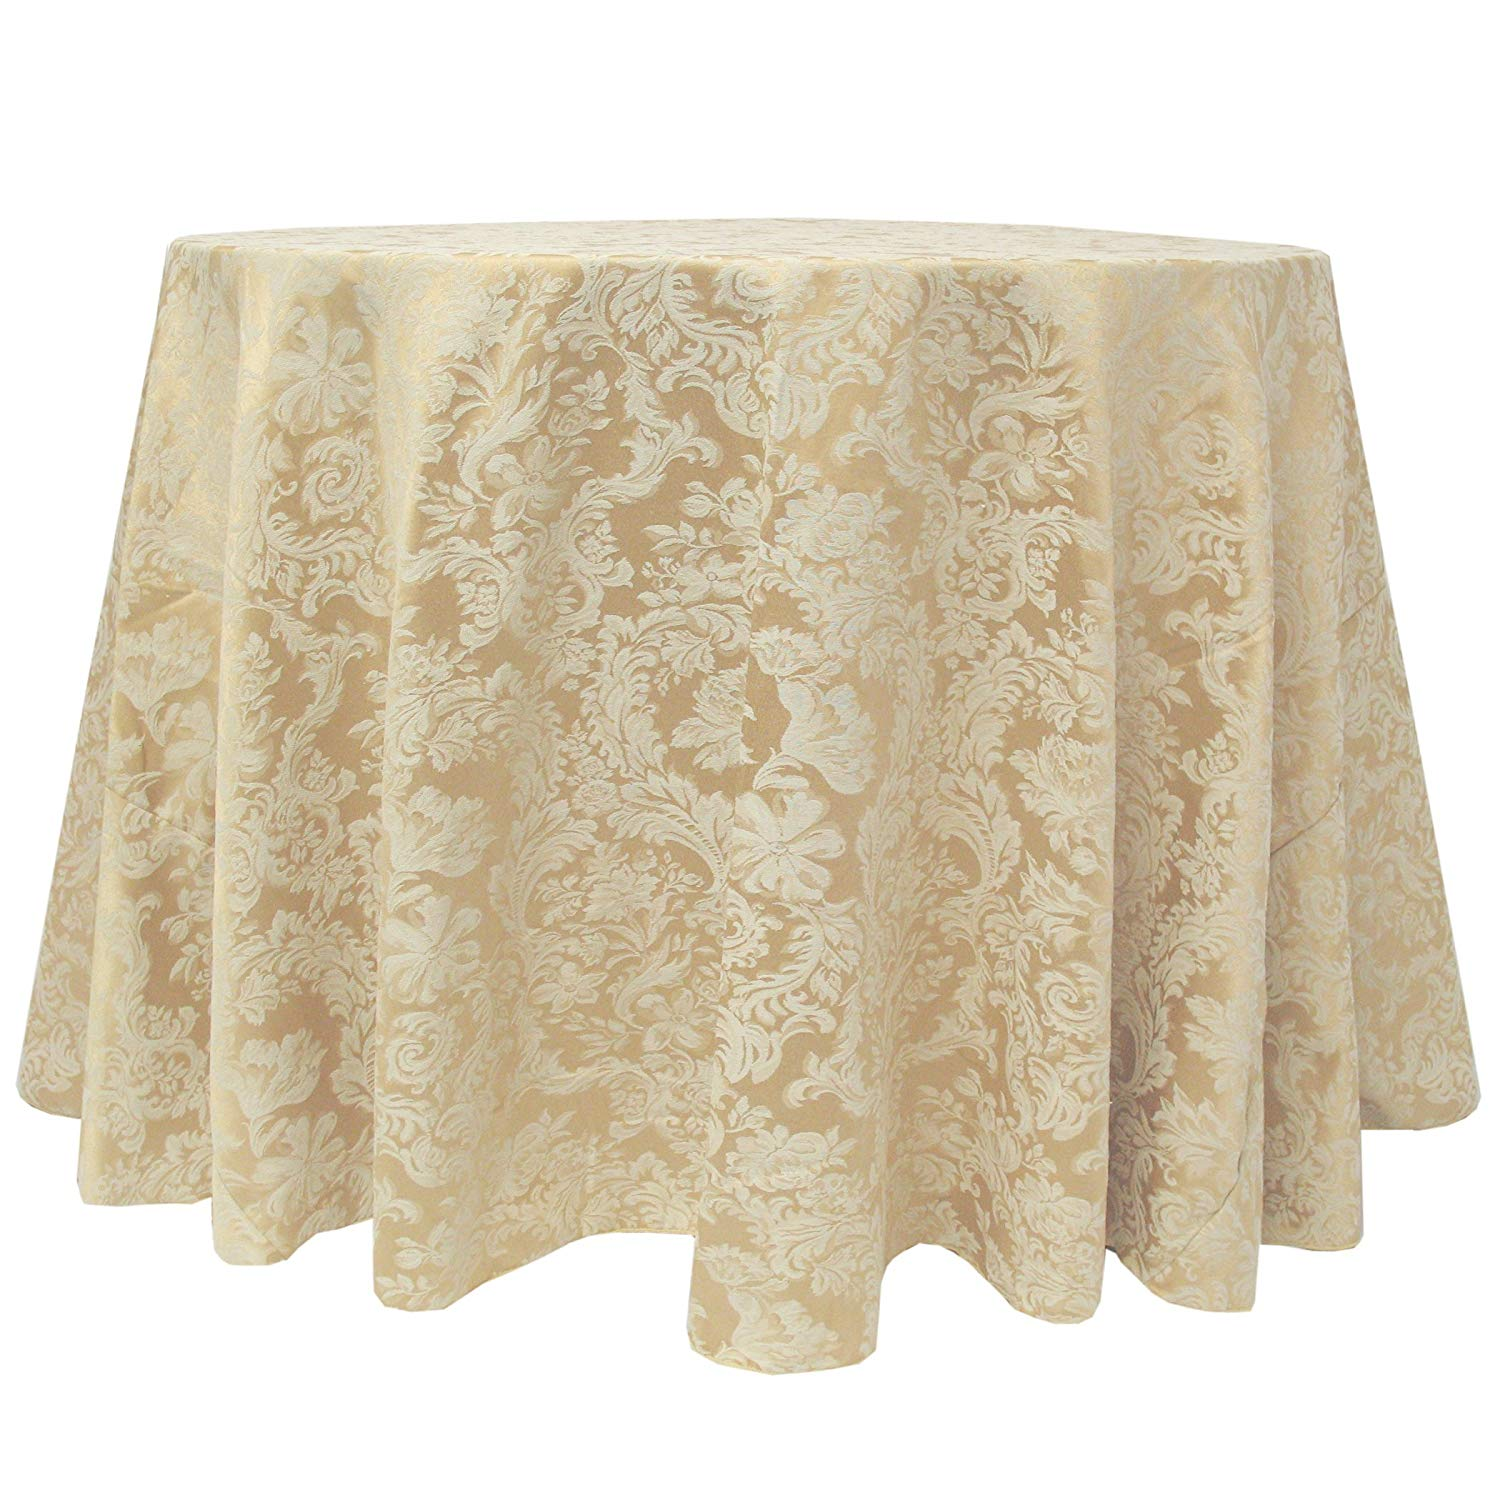 ultimate textile miranda inch round damask tablecloth for accent table fits tables smaller than inches diameter champagne ivory cream home kitchen brown linen ottawa bulk tennis